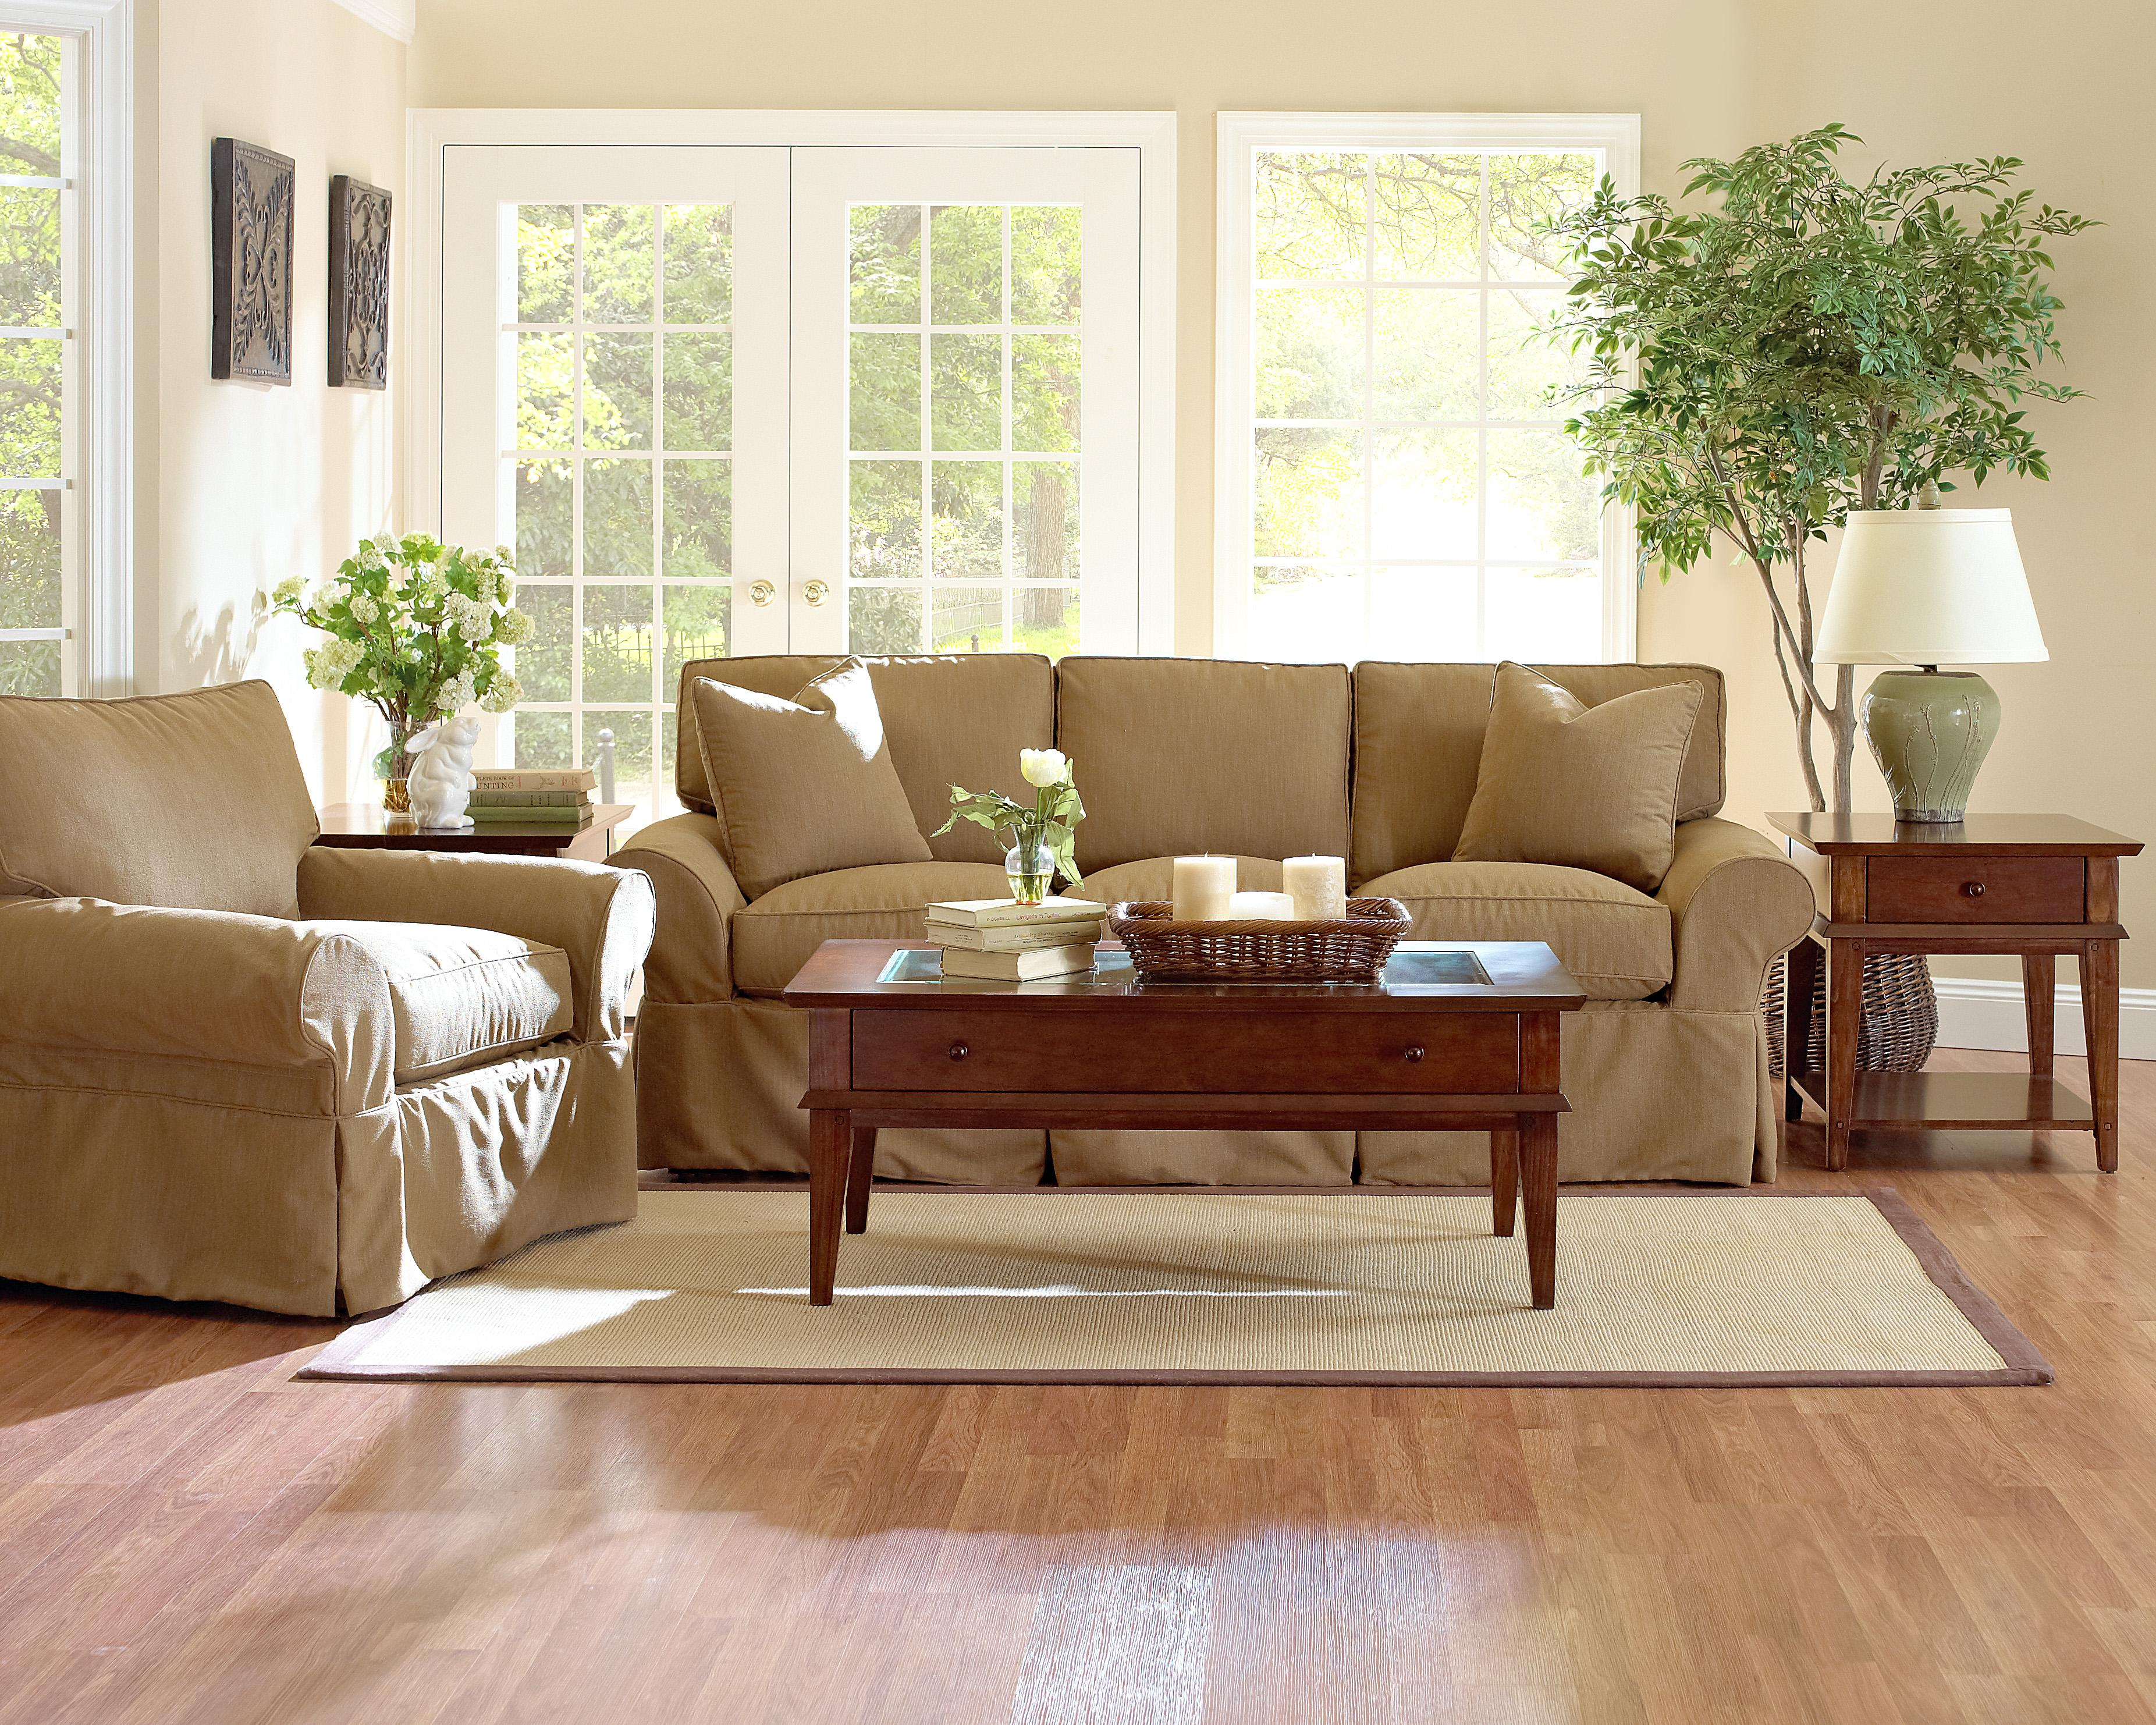 Klaussner Patterns Slipcovered Sectional Sofa with Left Chaise